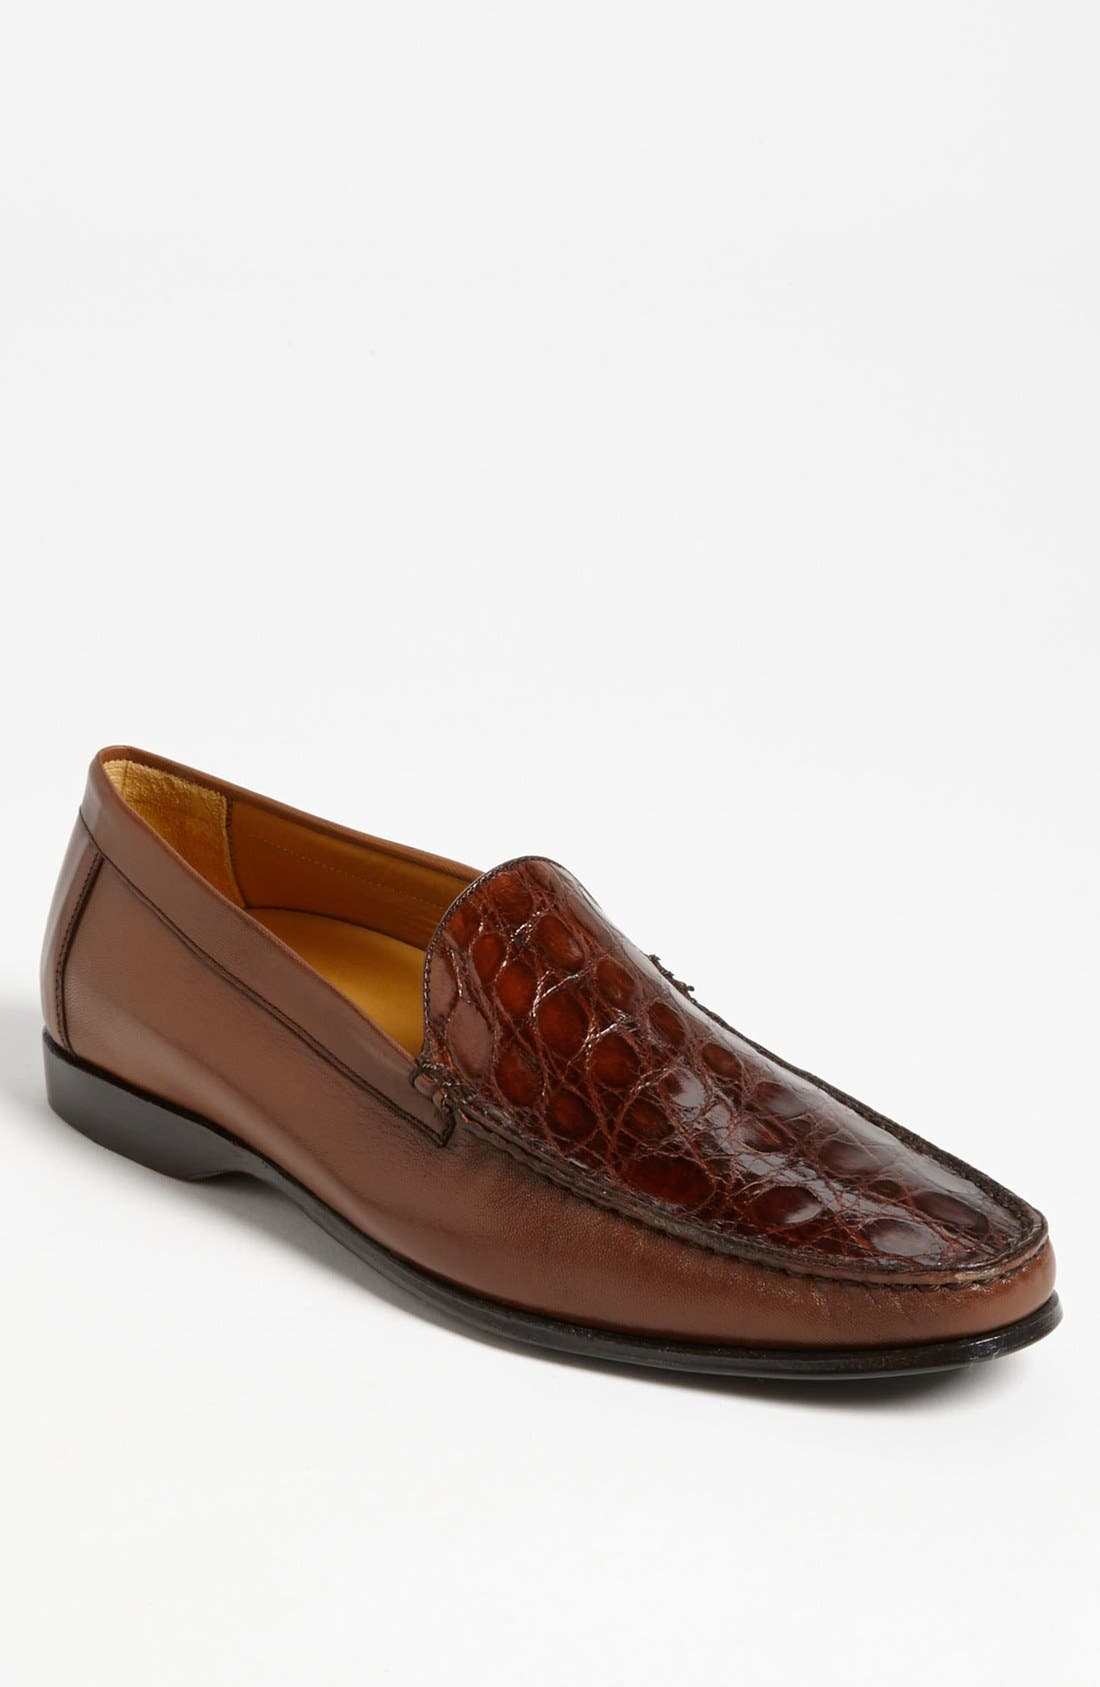 Alternate Image 1 Selected - Mezlan 'Costanzo' Loafer